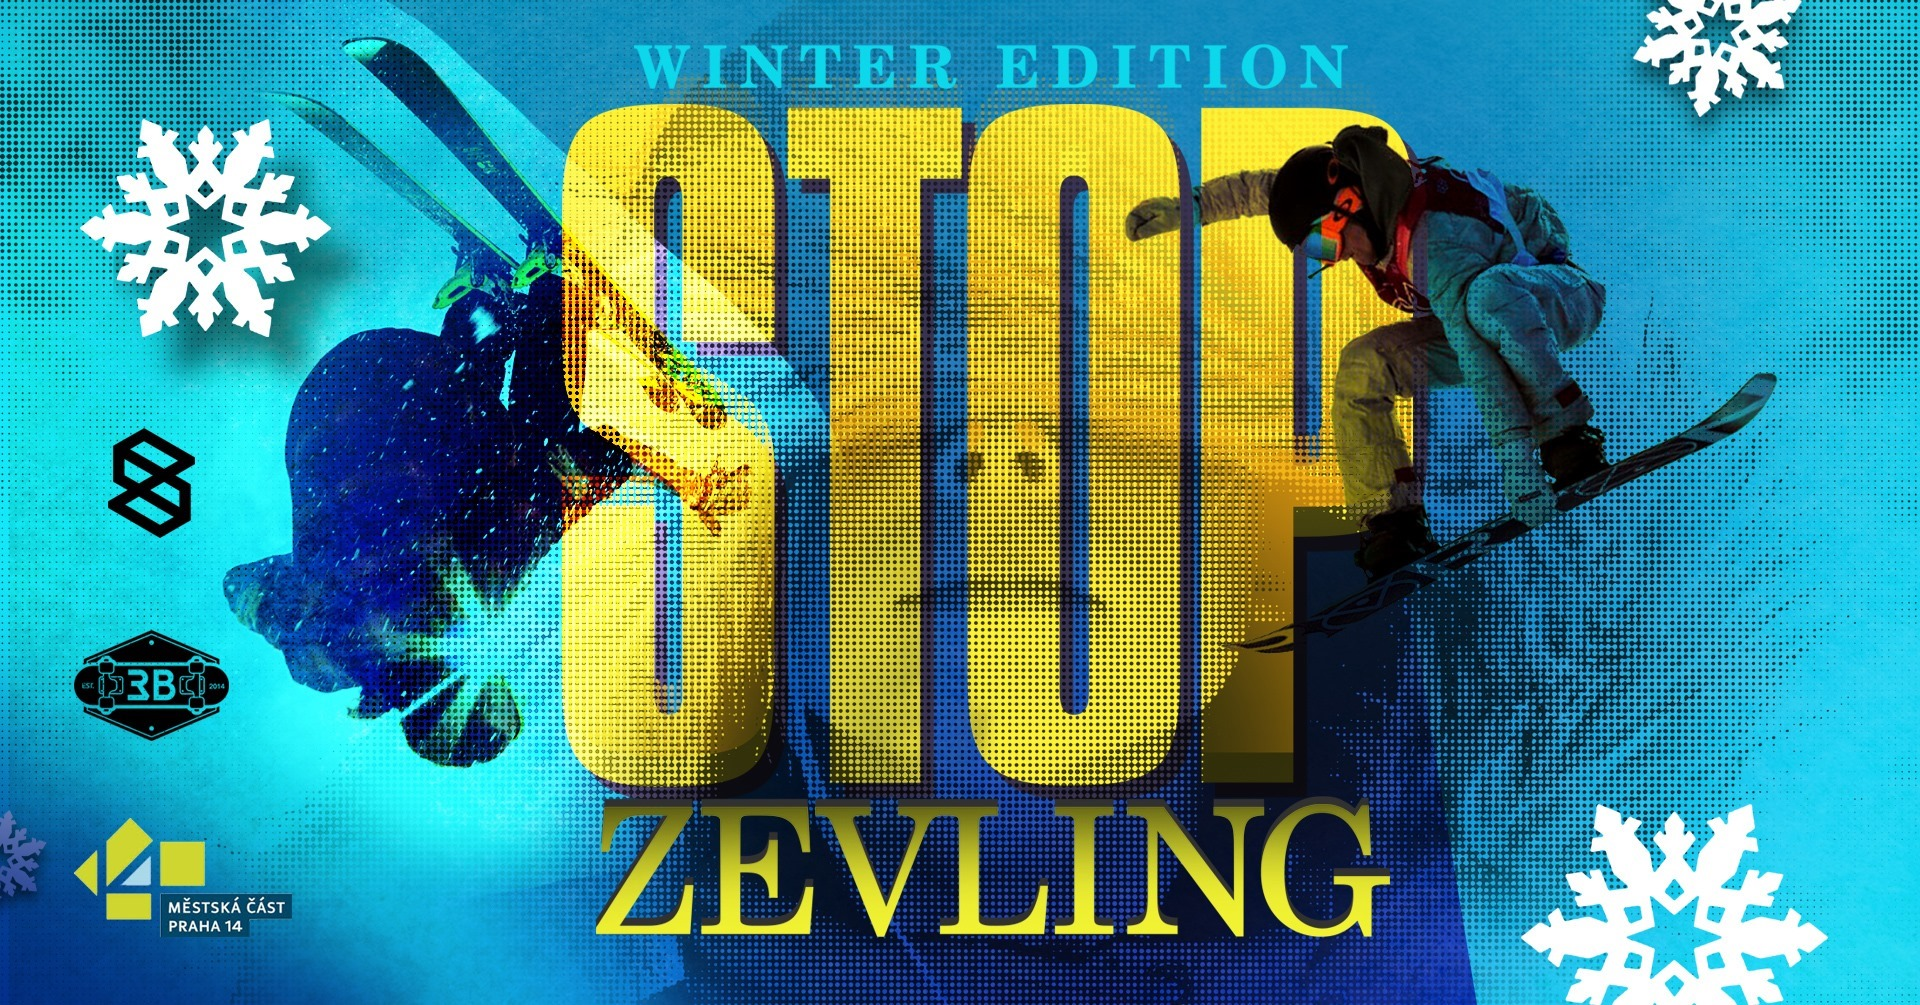 Stop Zewling Winter edition